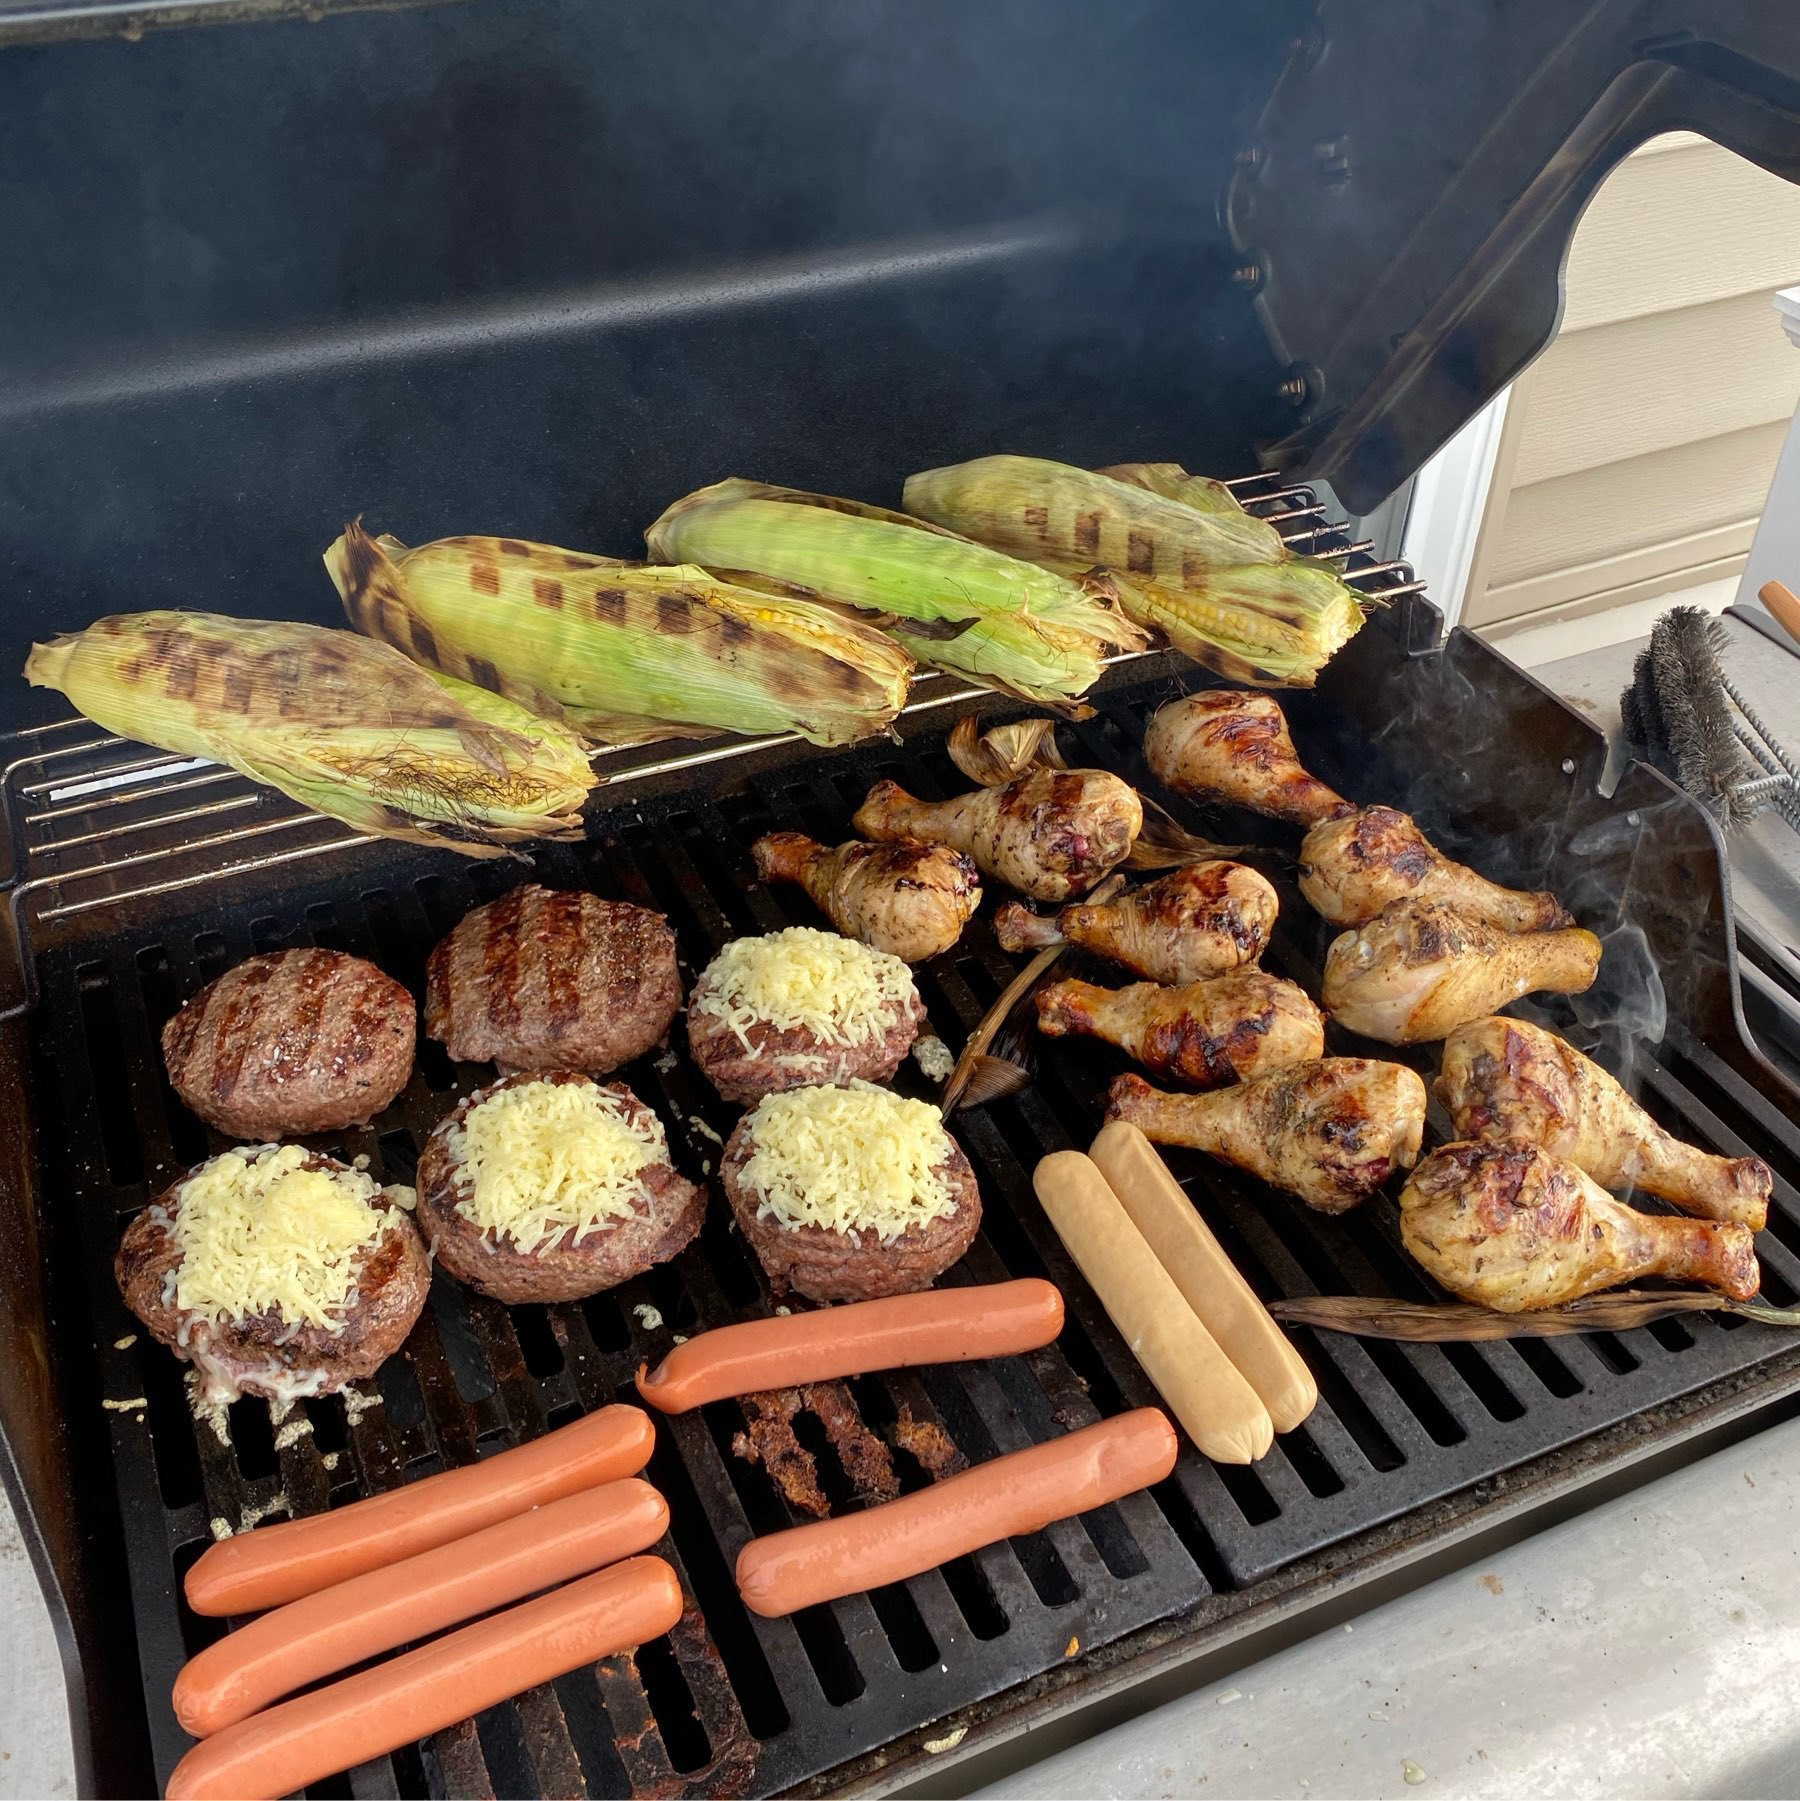 A grill with corn, burgers, hot dogs, and chicken legs.